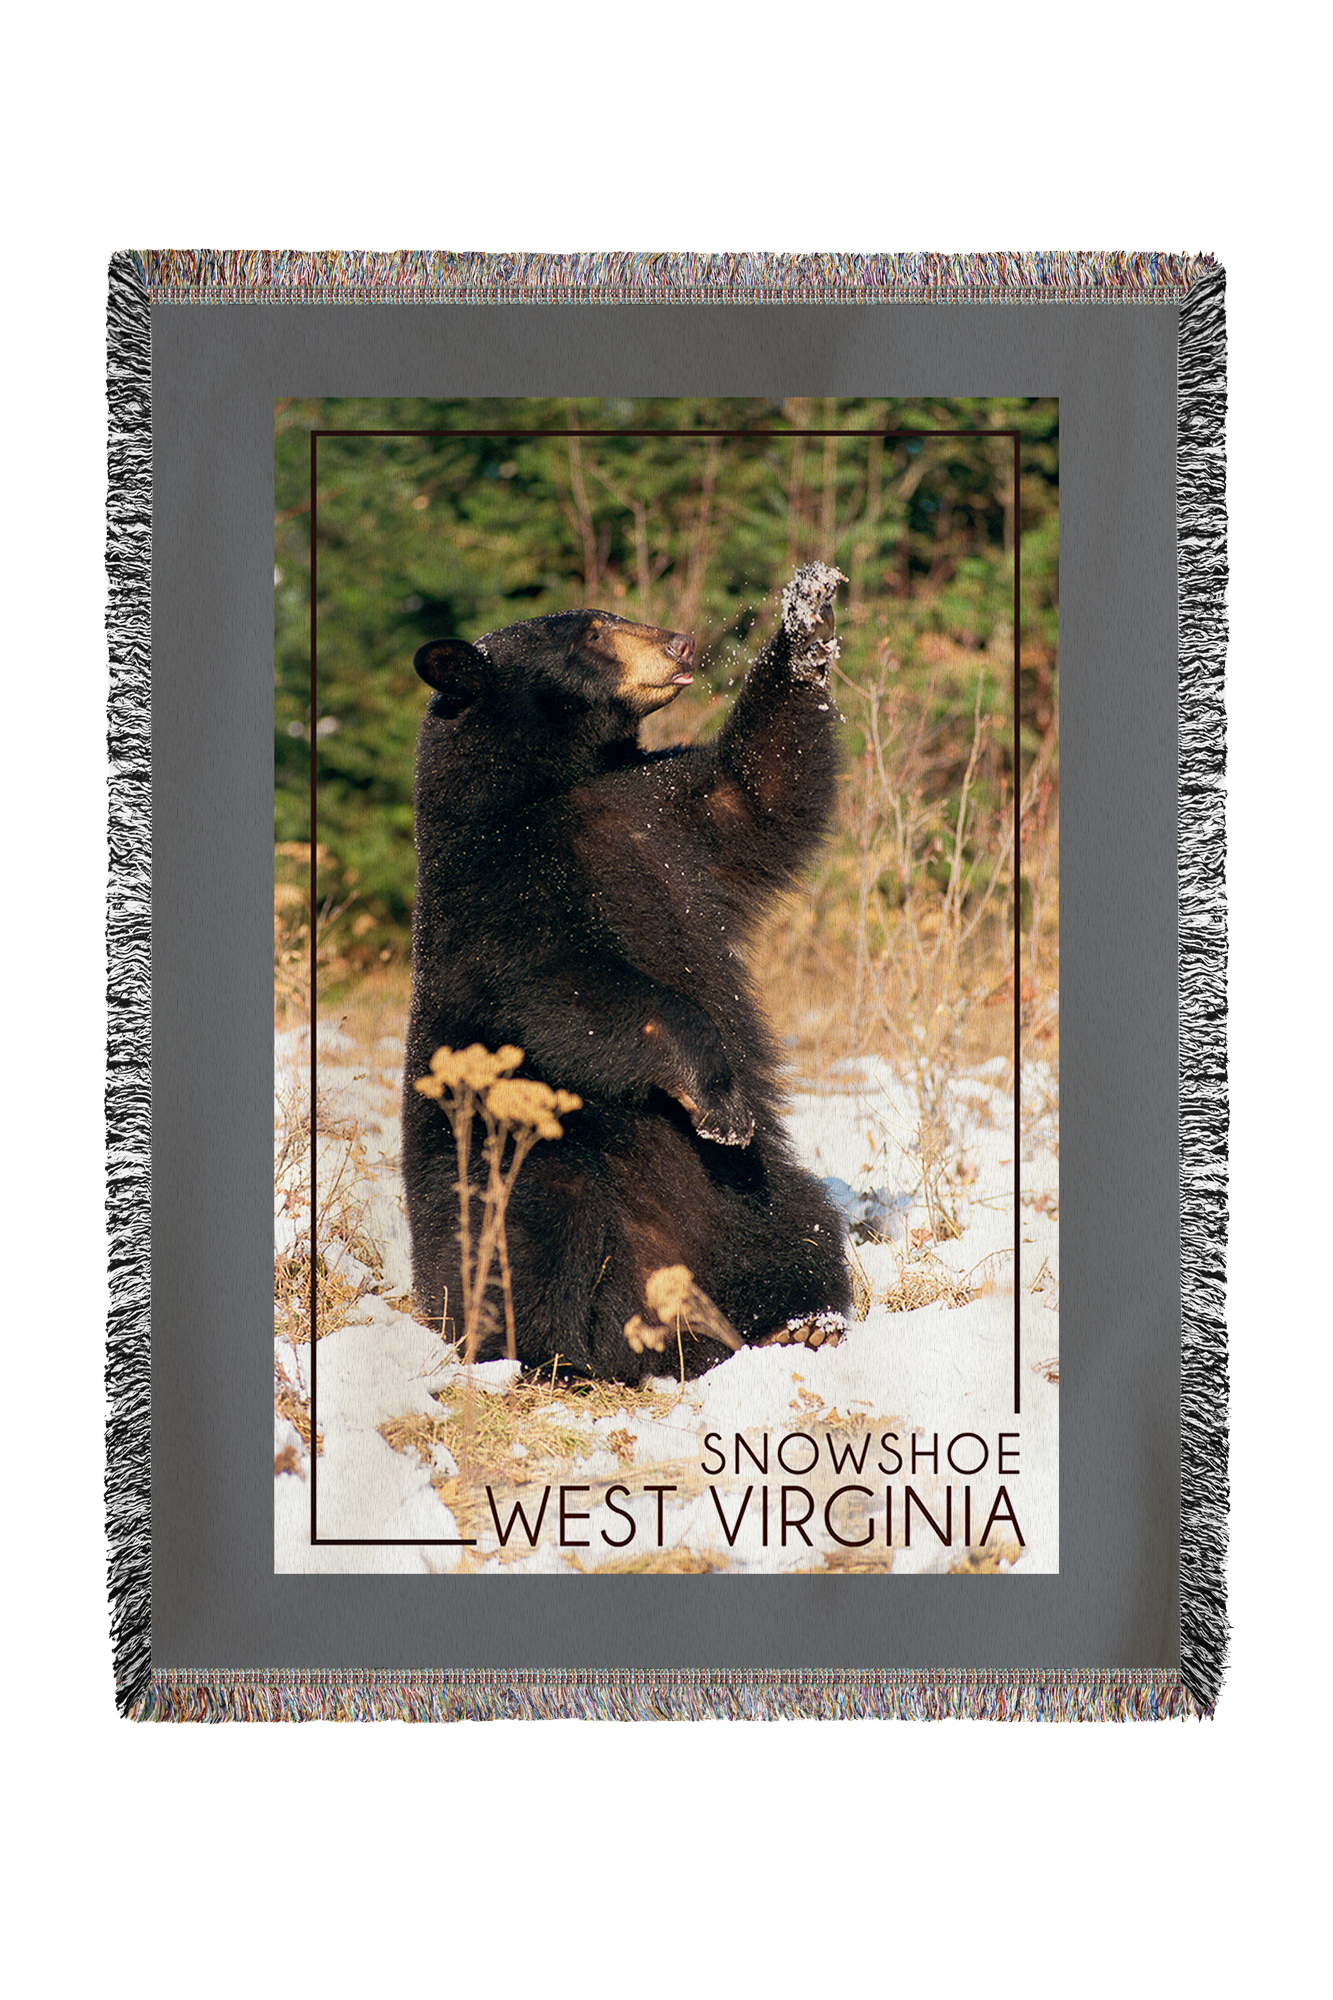 Snowshoe, West Virginia Bear Playing with Snow Lantern Press Photography (60x80 Woven Chenille Yarn Blanket) by Lantern Press